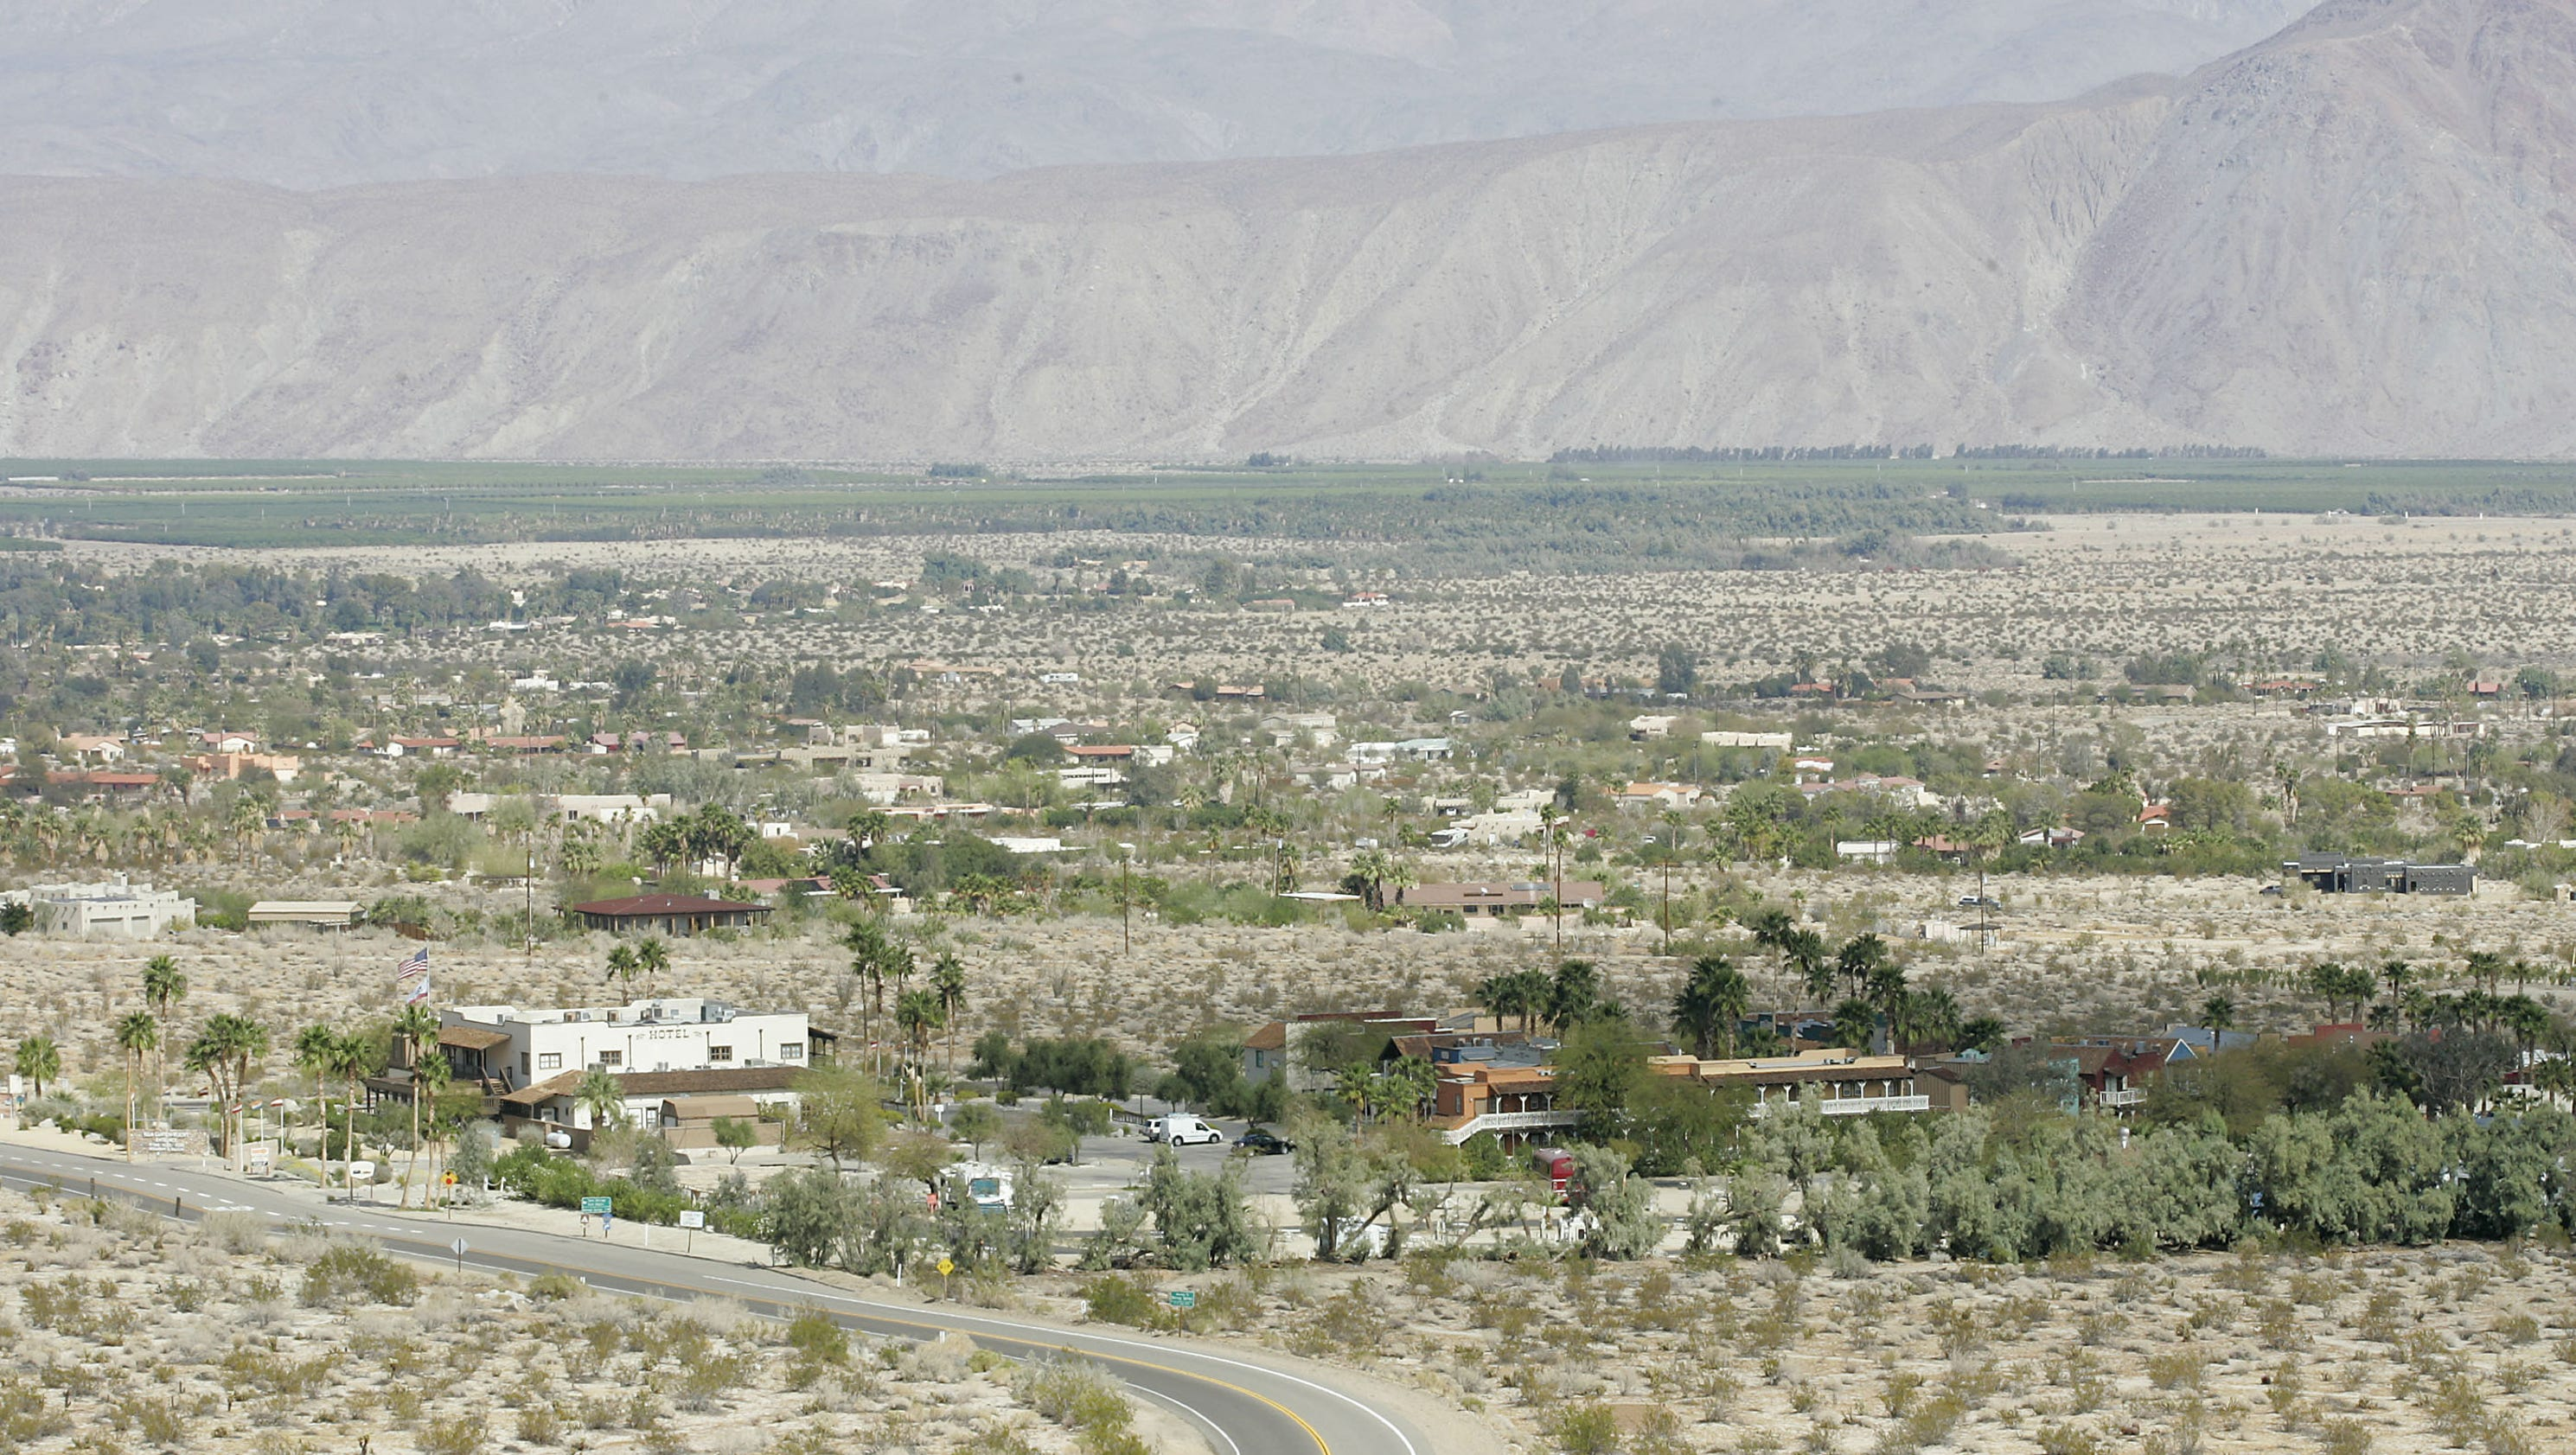 borrego springs chatrooms Instantly search and view photos of all homes for sale in borrego springs, ca now borrego springs, ca real estate listings updated every 15 to 30 minutes.